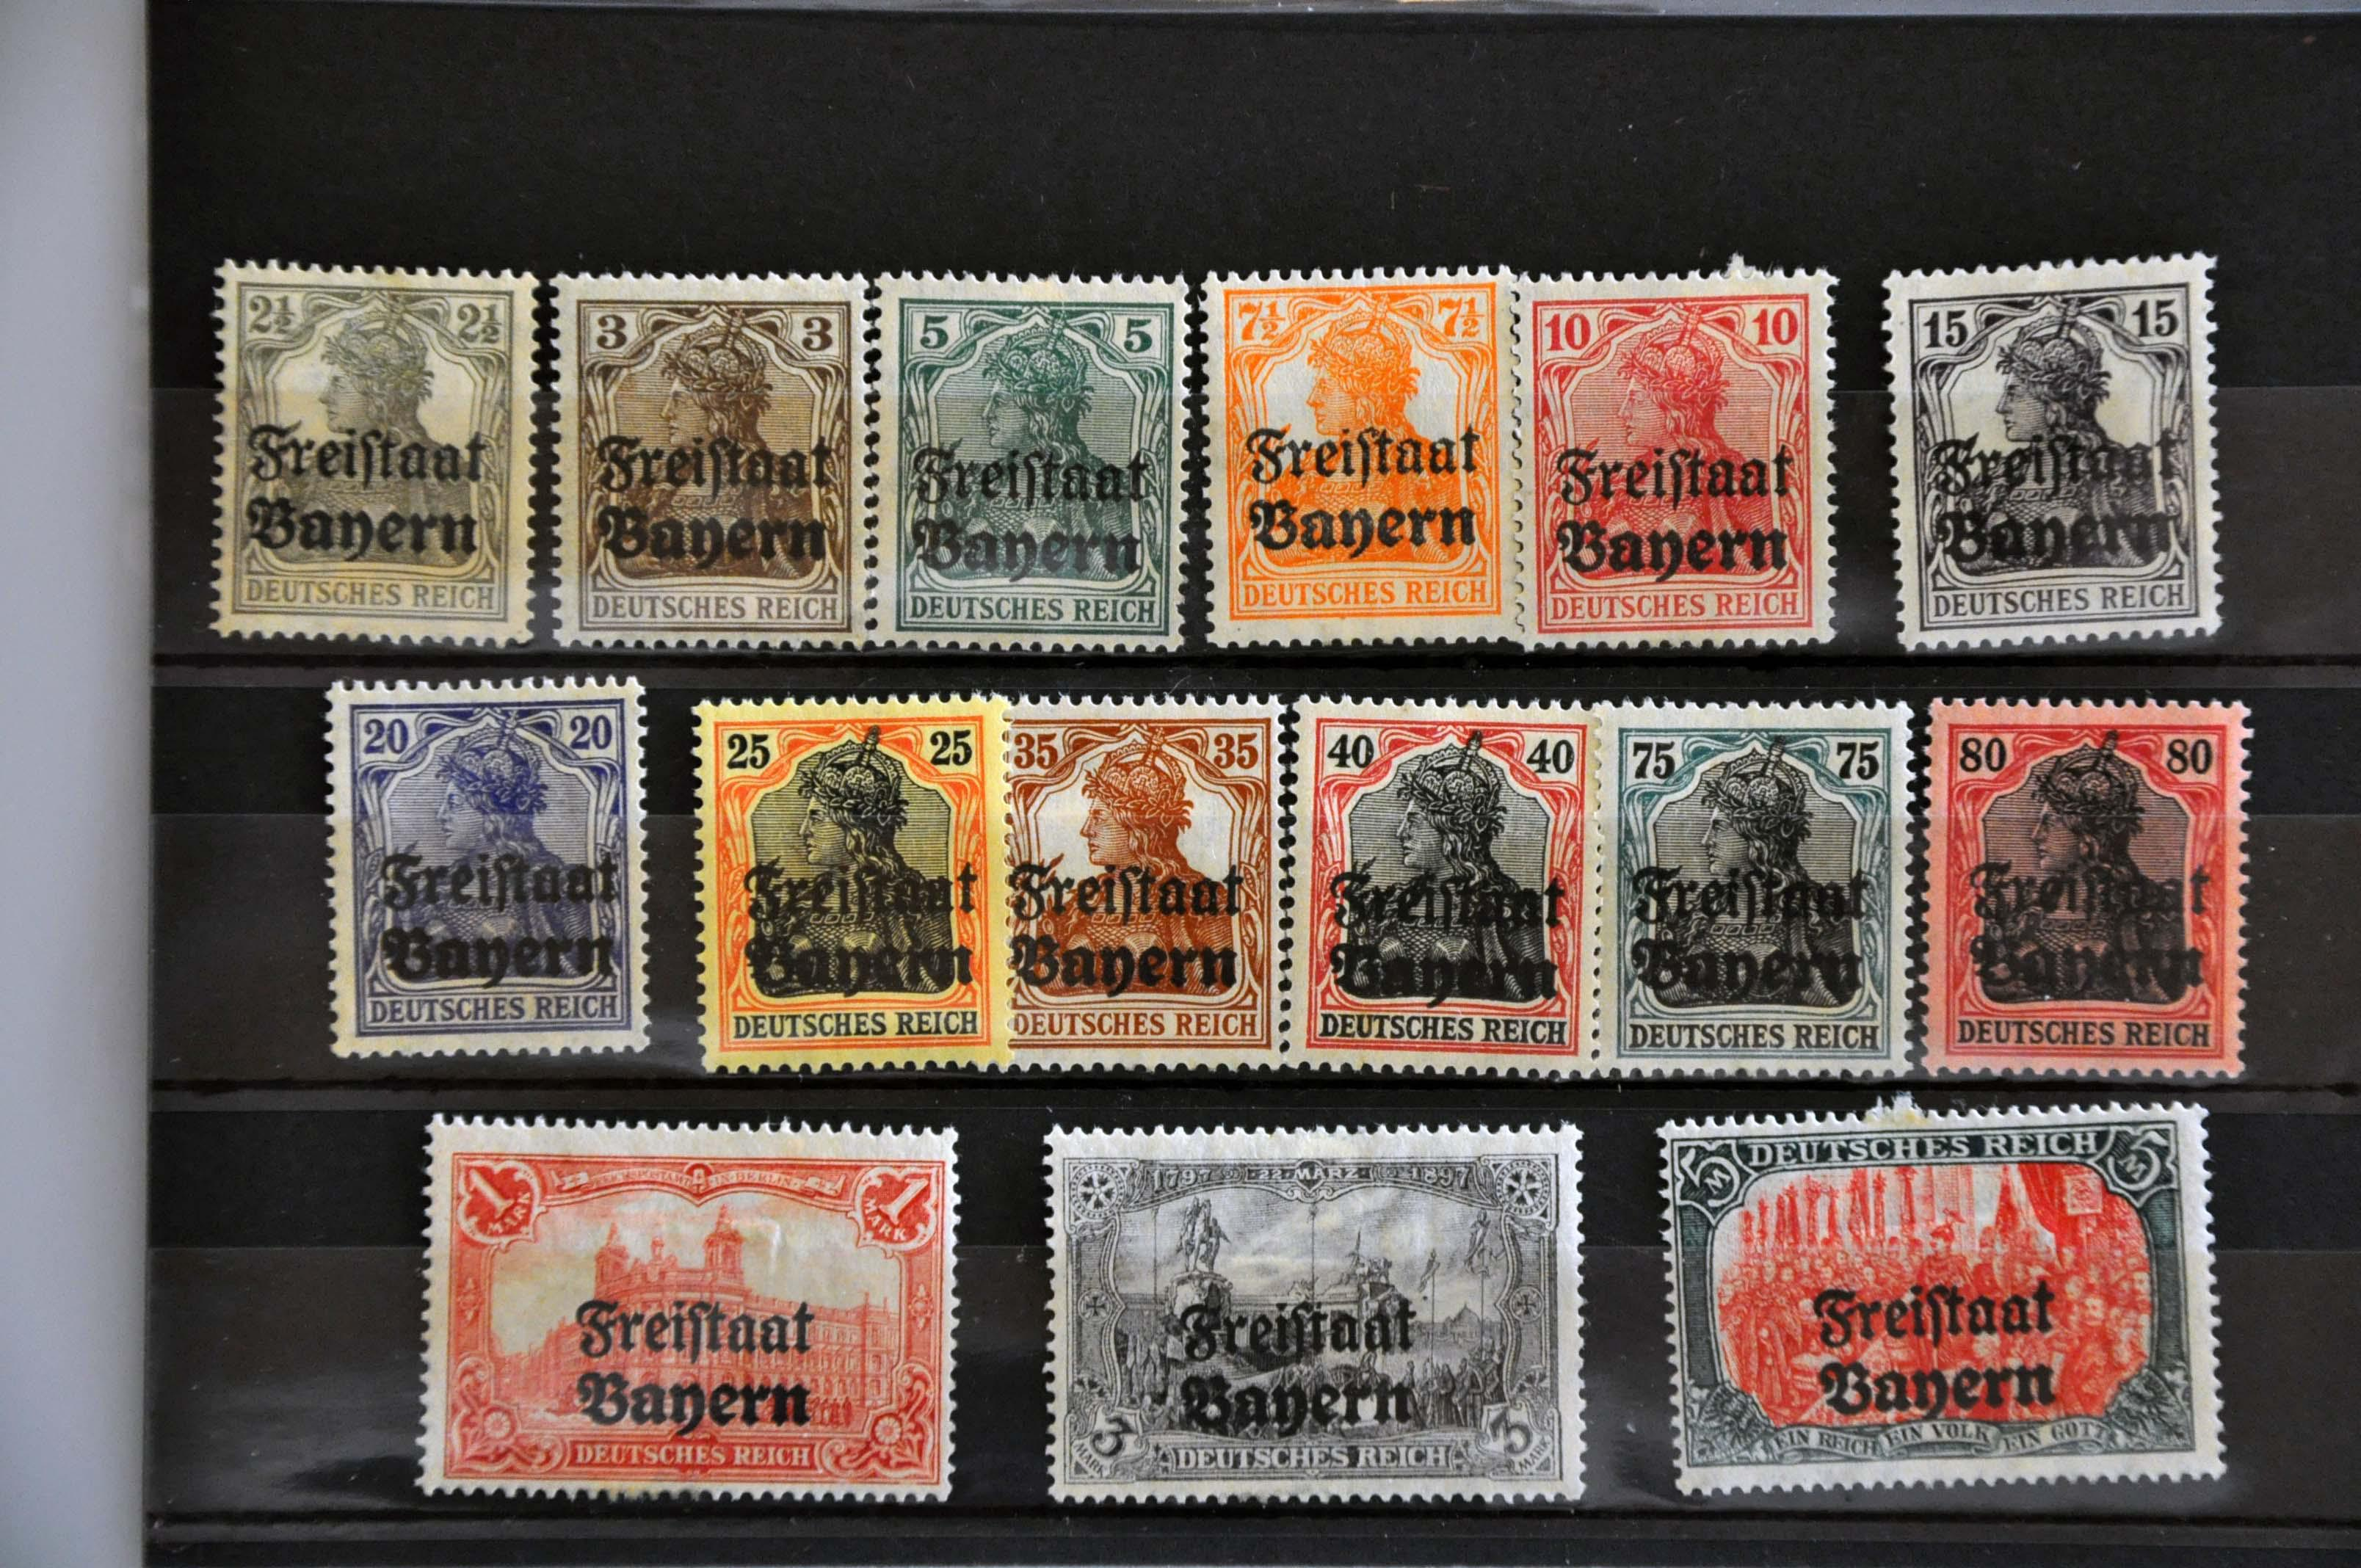 Lot 3738 - Germany and Former Territories german states -  Corinphila veilingen Auction 233: General sale